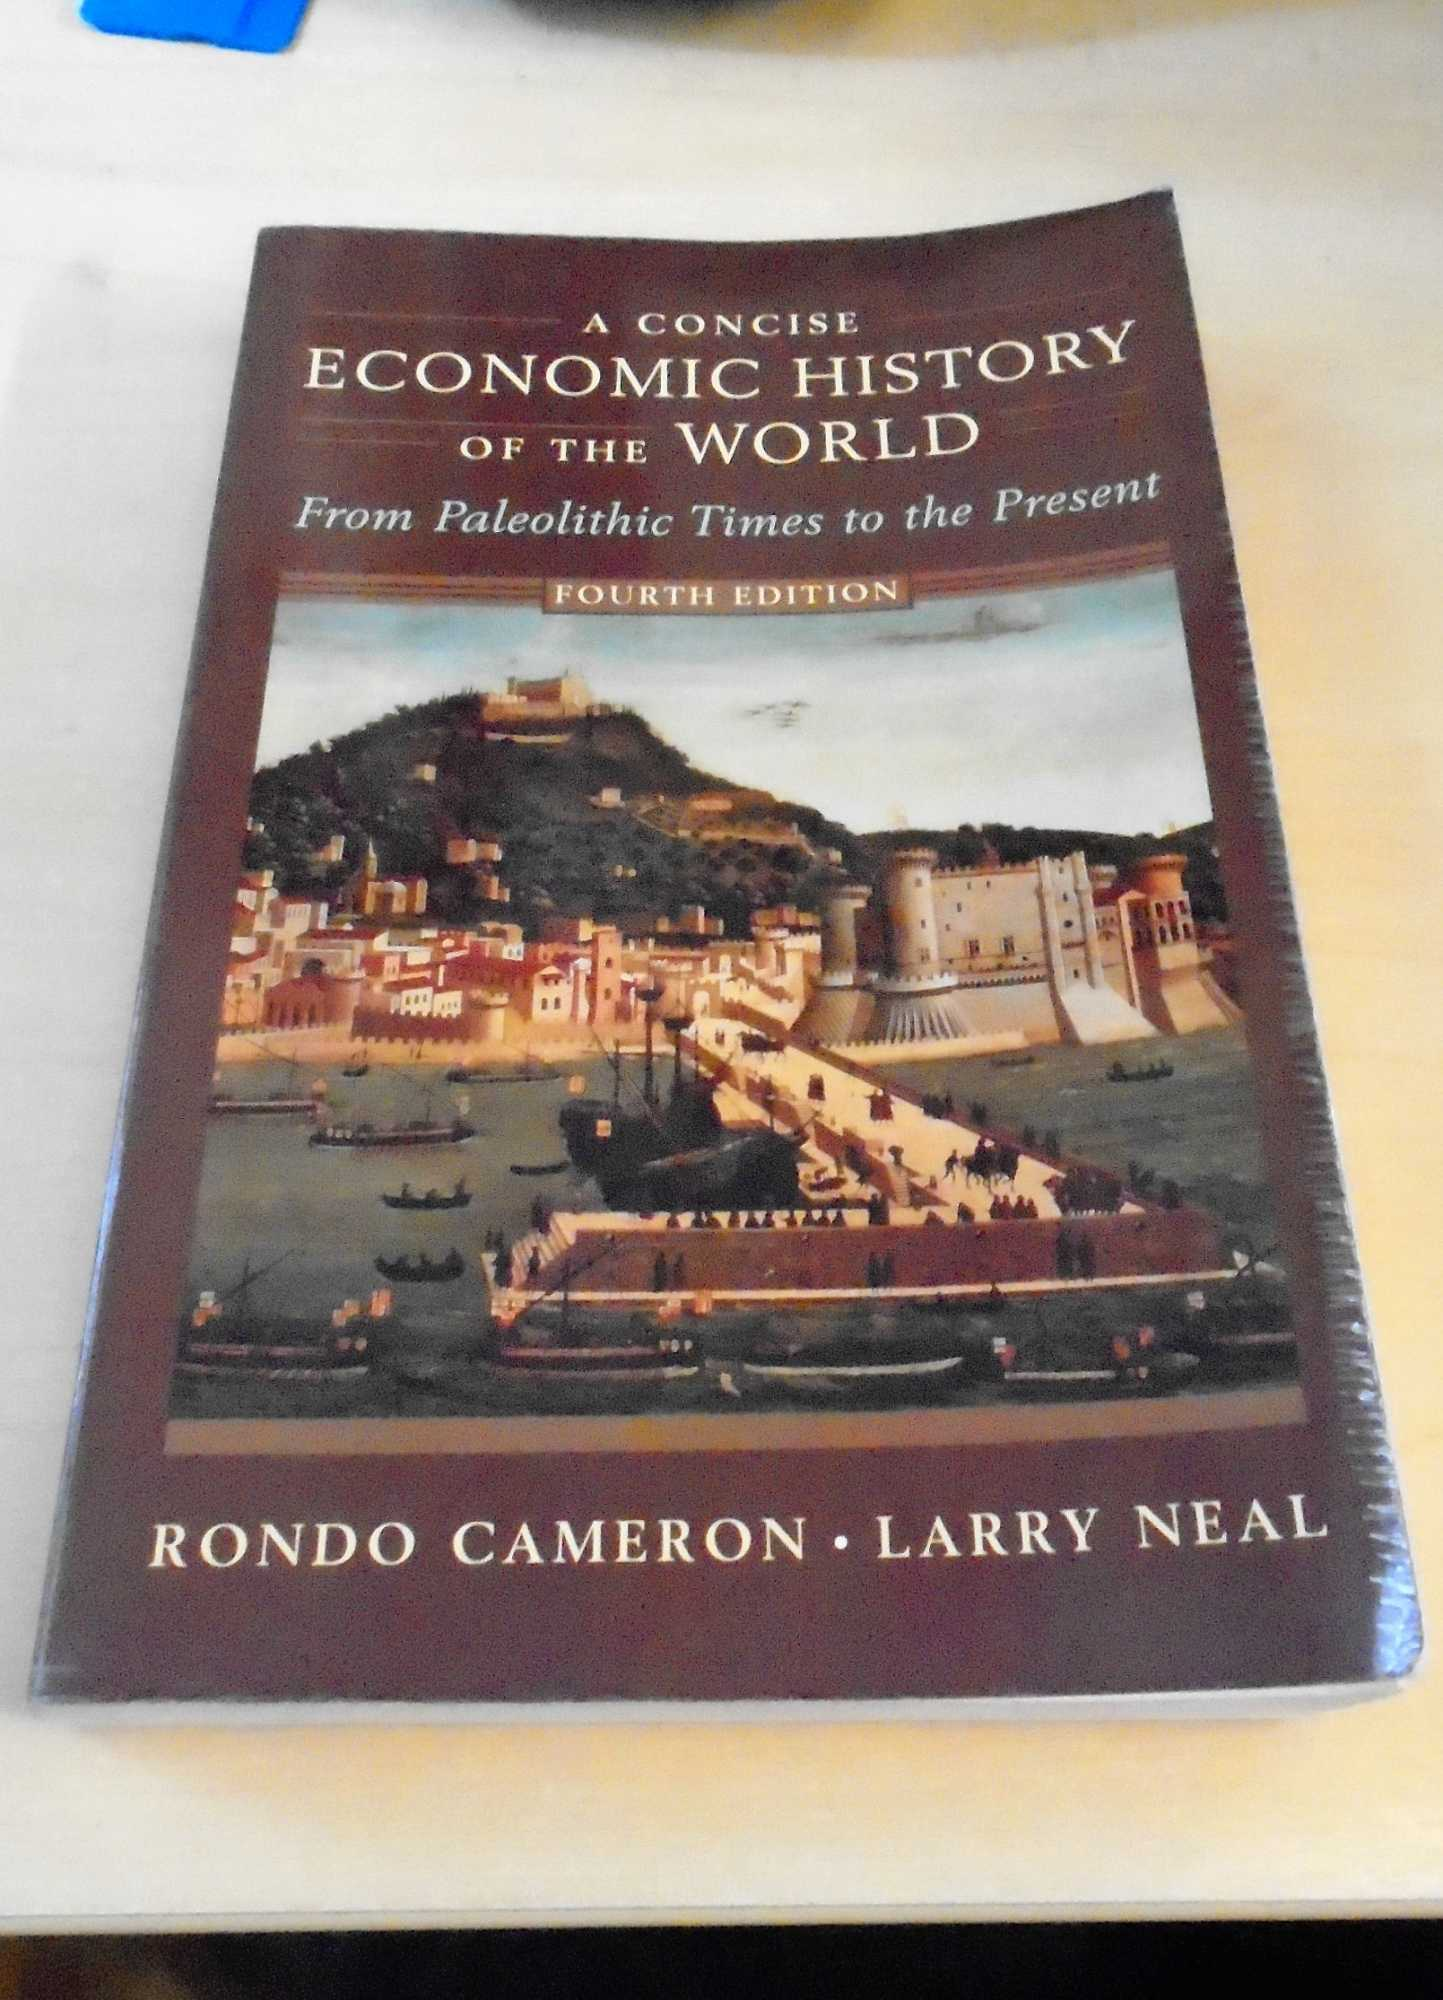 A Concise Economic History of the World From Paleolithic Times to the Present